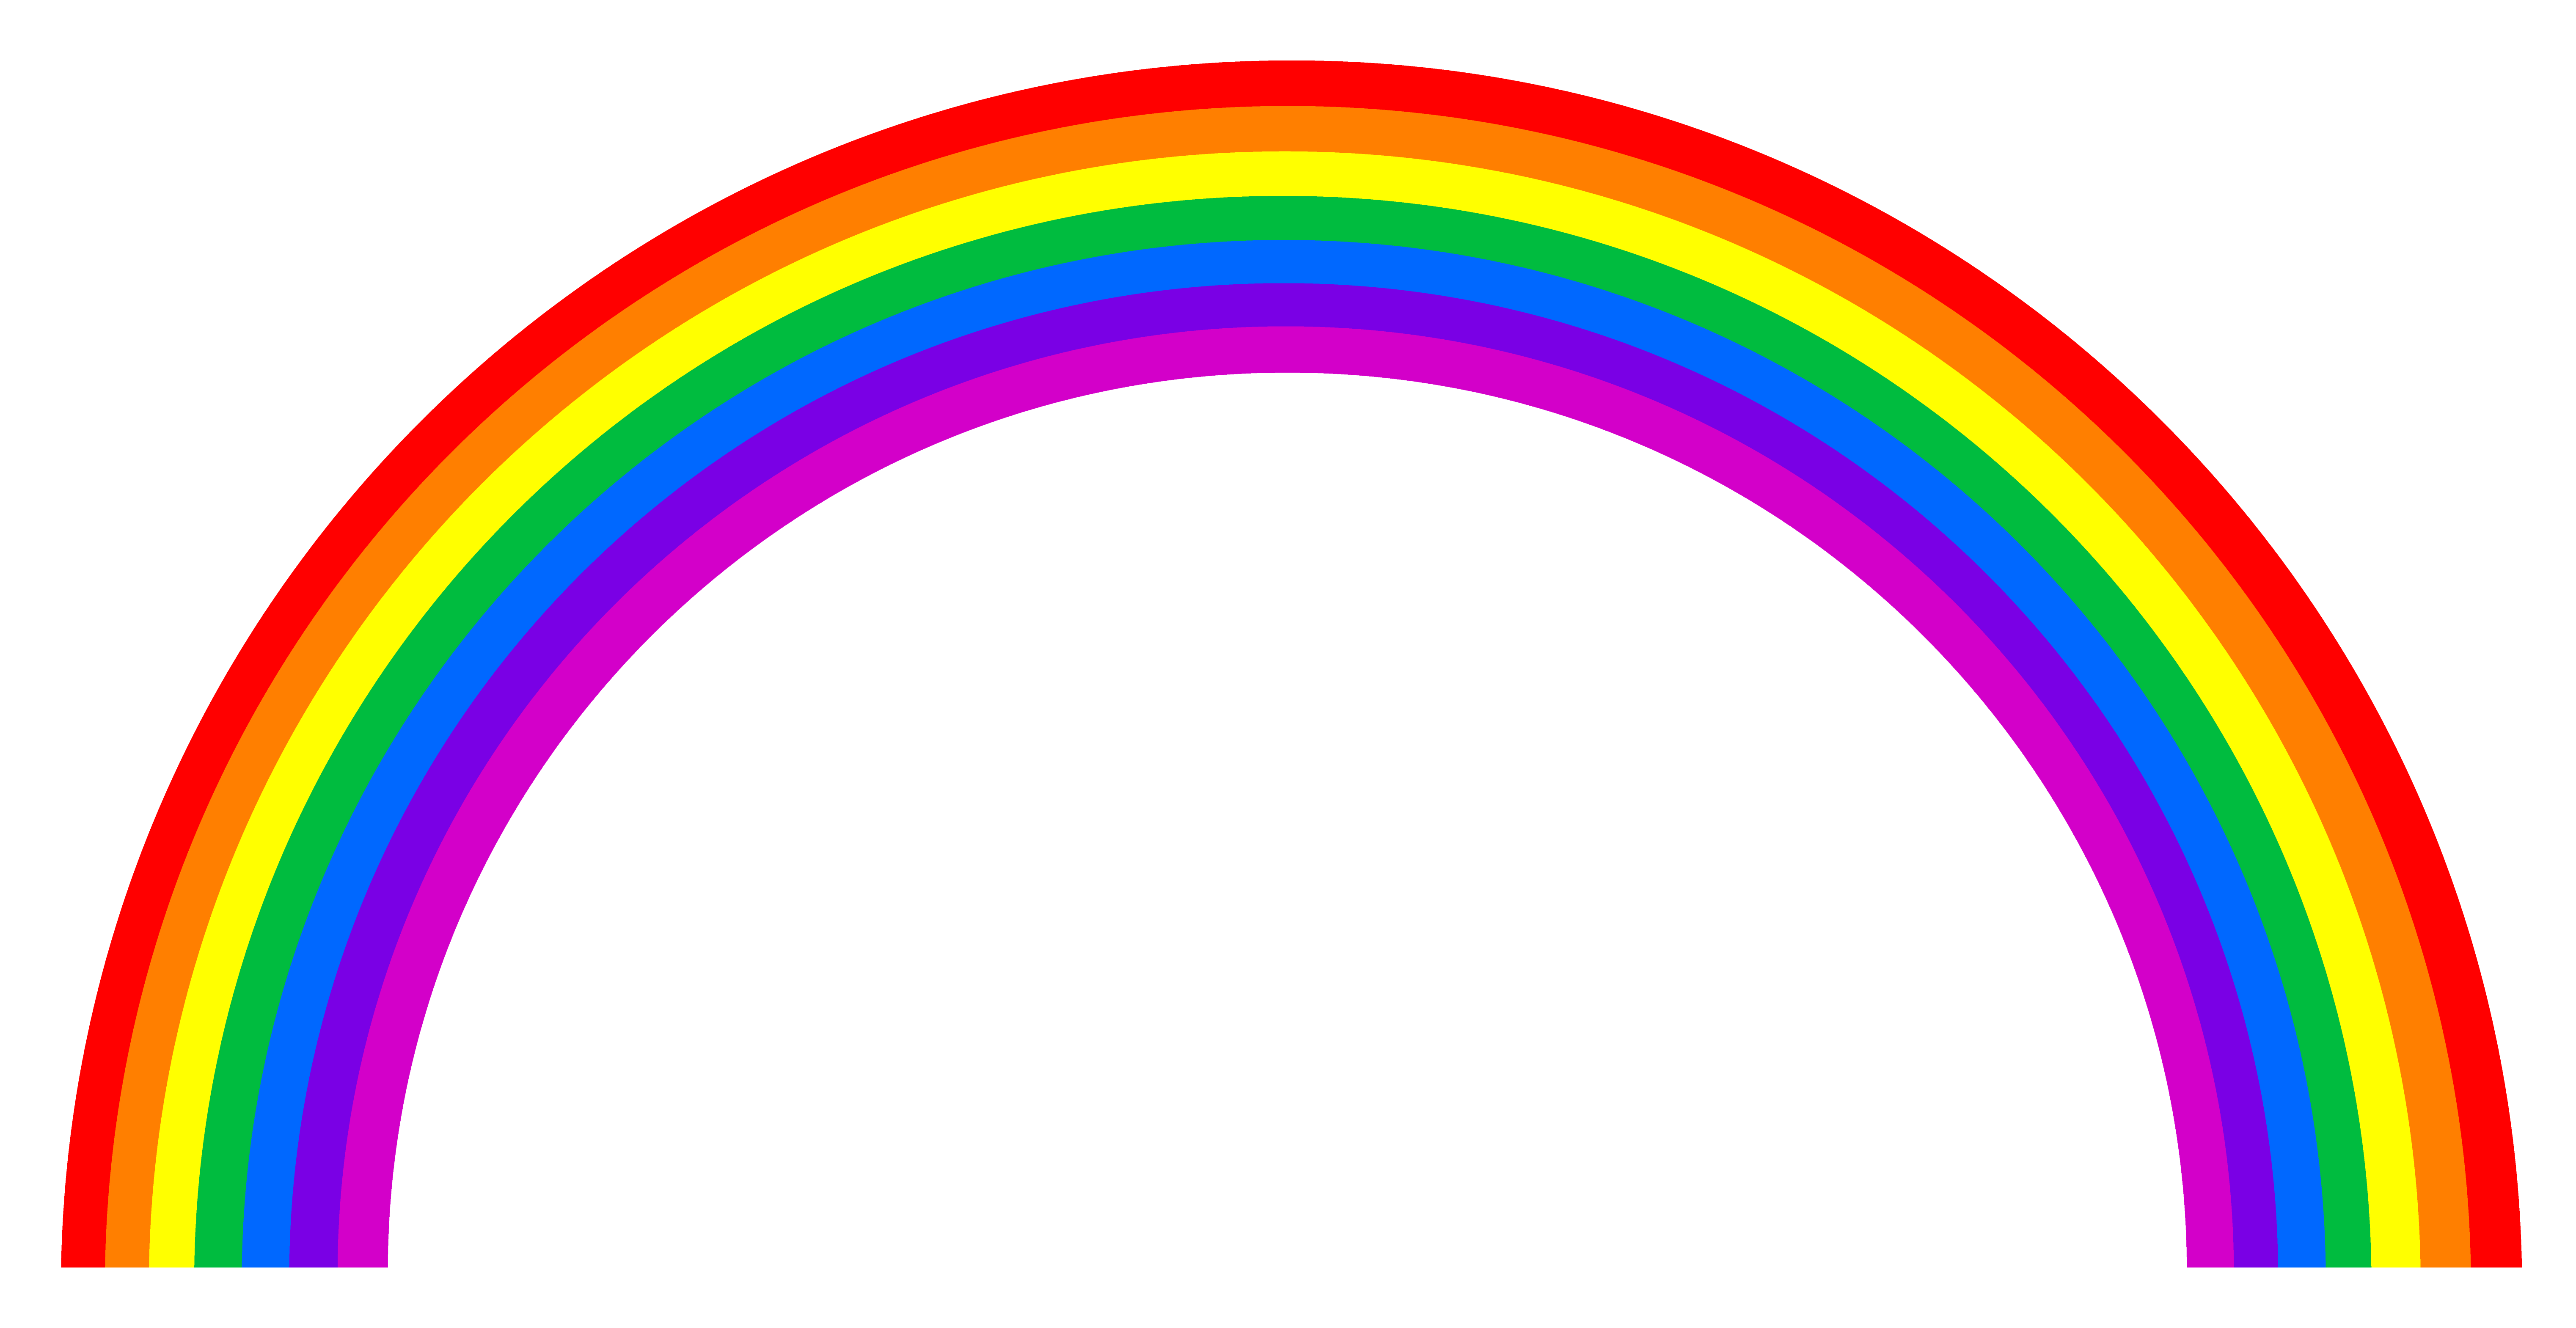 HQ Rainbow Wallpapers | File 260.78Kb